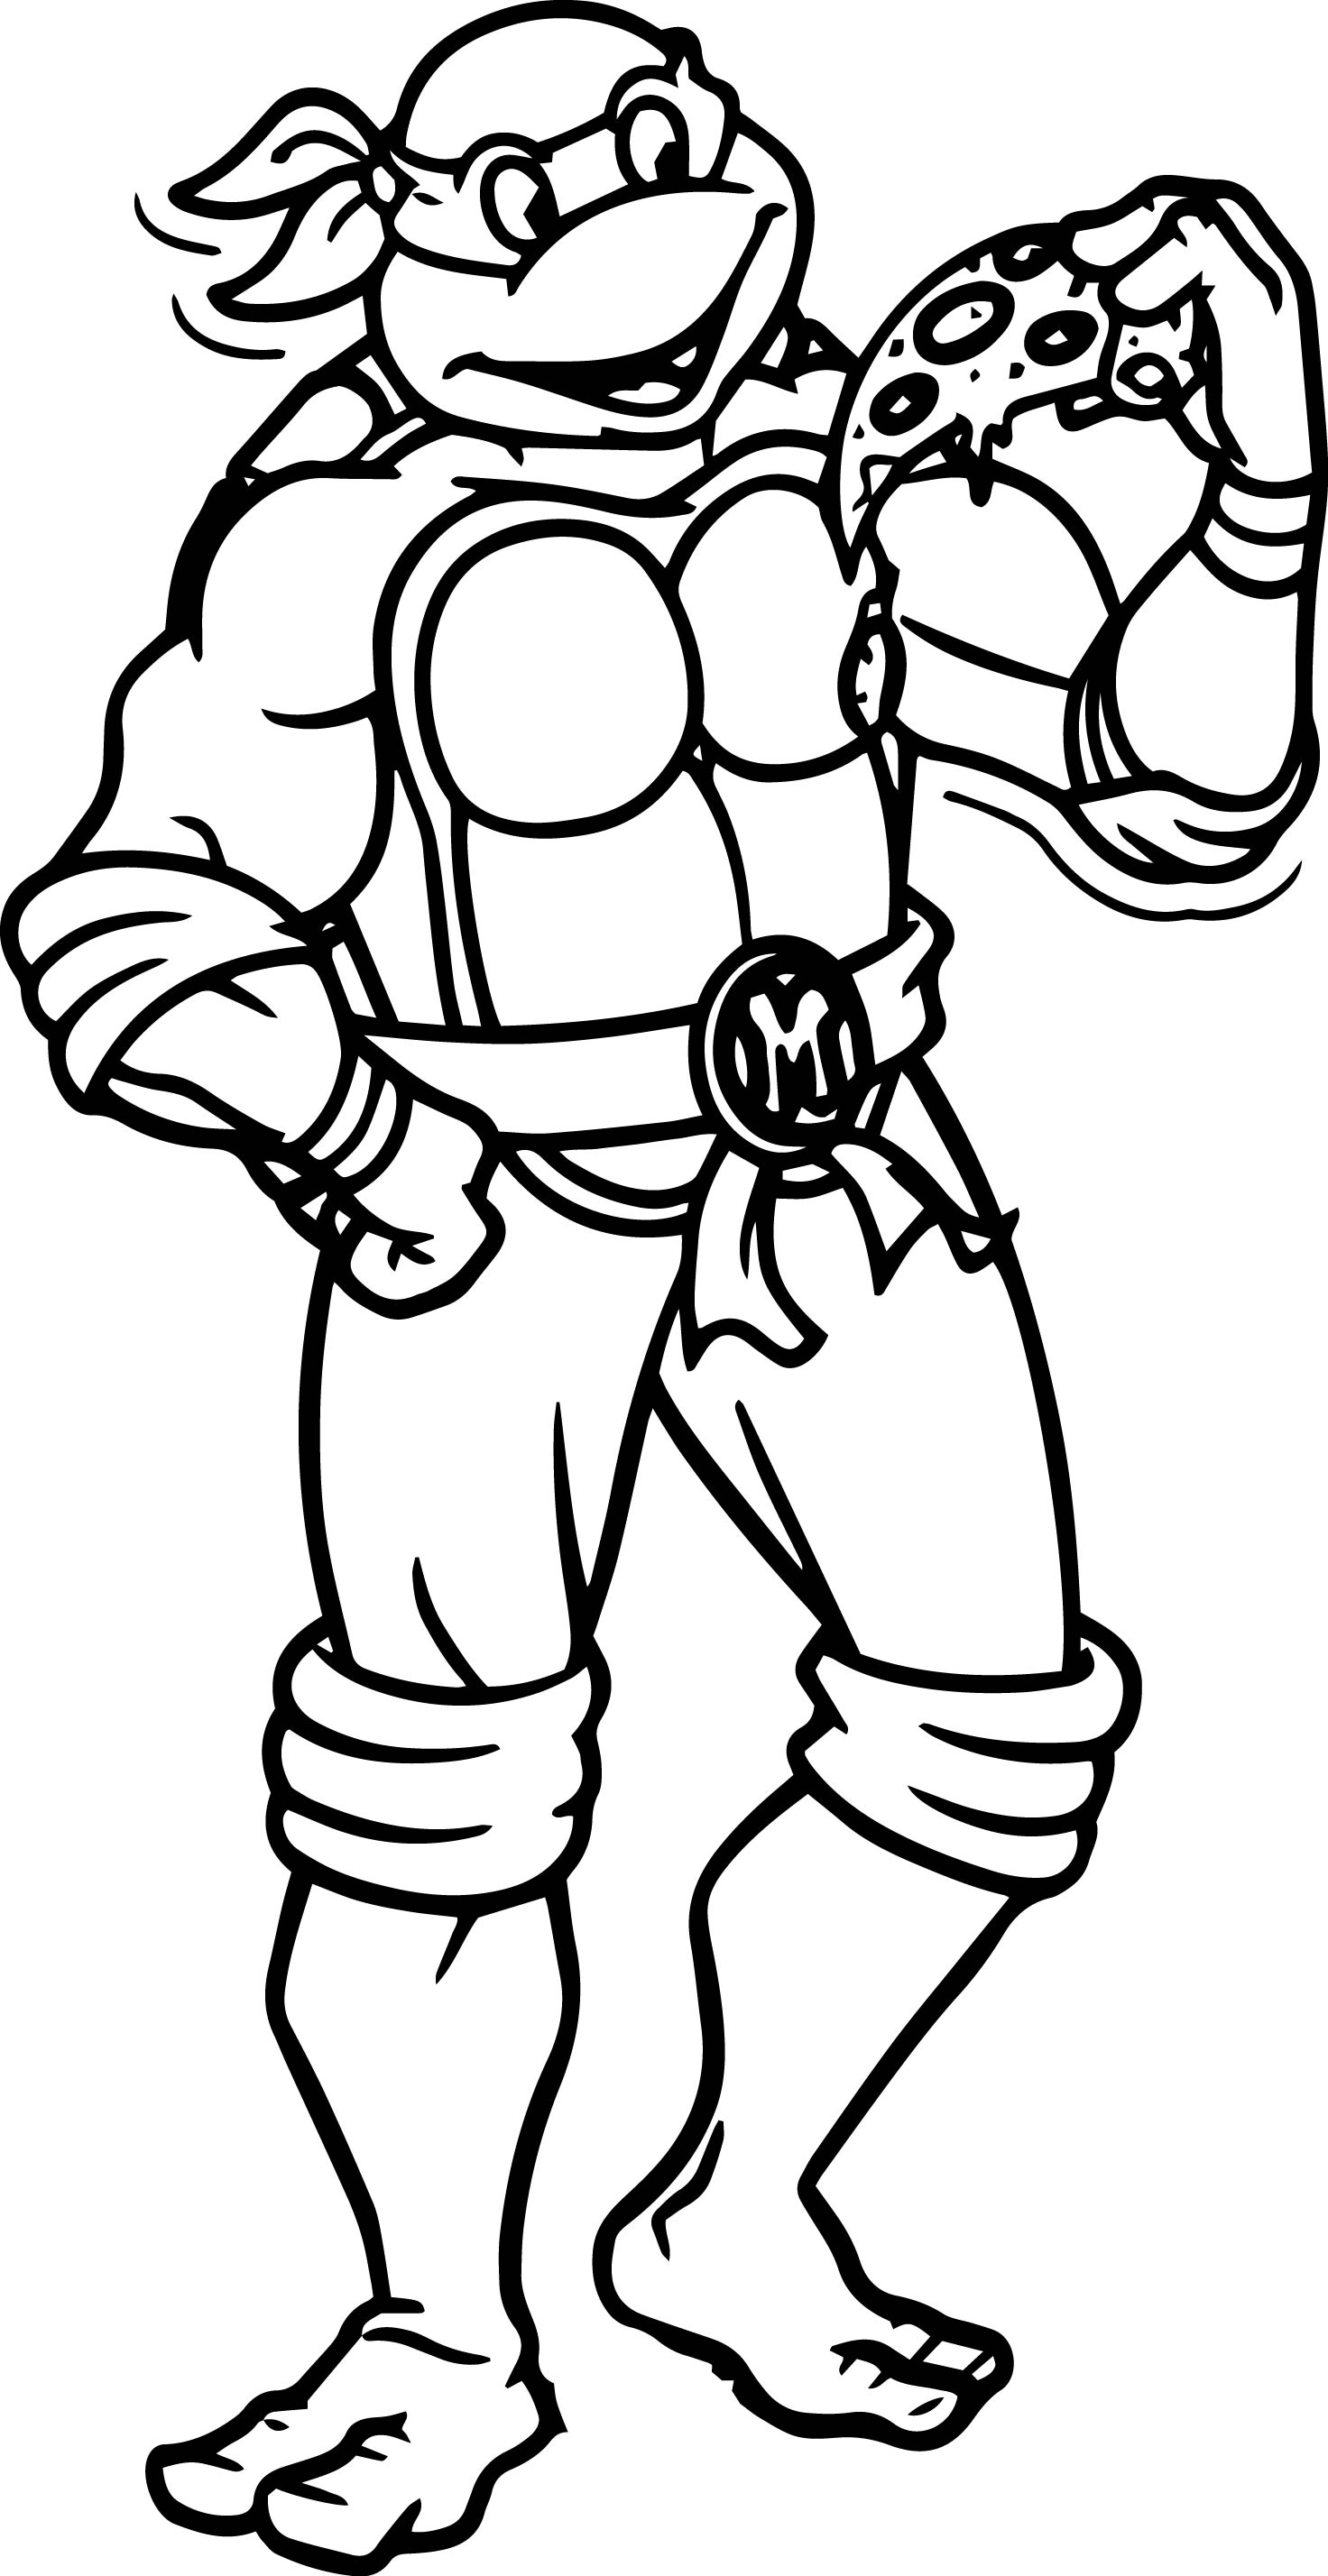 Turtle Best Eat Pizza Coloring Page Teenage Mutant